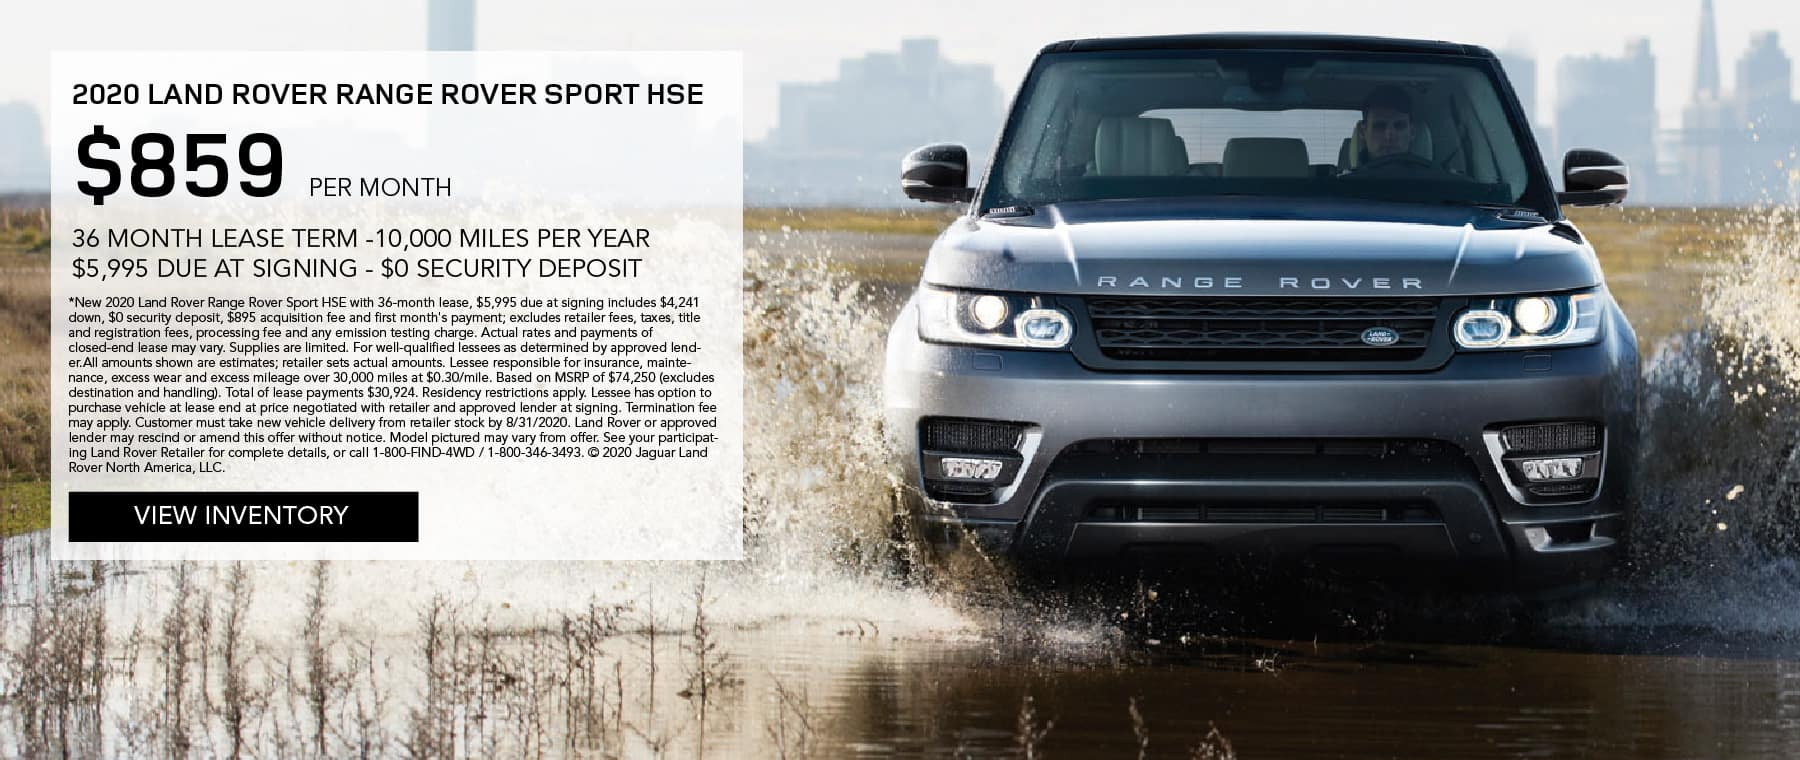 2020 RANGE ROVER SPORT HSE. $859 PER MONTH. 36 MONTH LEASE TERM. $5,995 CASH DUE AT SIGNING. $0 SECURITY DEPOSIT. 10,000 MILES PER YEAR. EXCLUDES RETAILER FEES, TAXES, TITLE AND REGISTRATION FEES, PROCESSING FEE AND ANY EMISSION TESTING CHARGE. ENDS 8/31/2020. VIEW INVENTORY. SILVER RANGE ROVER SPORT DRIVING INTO PUDDLE NEAR CITY.